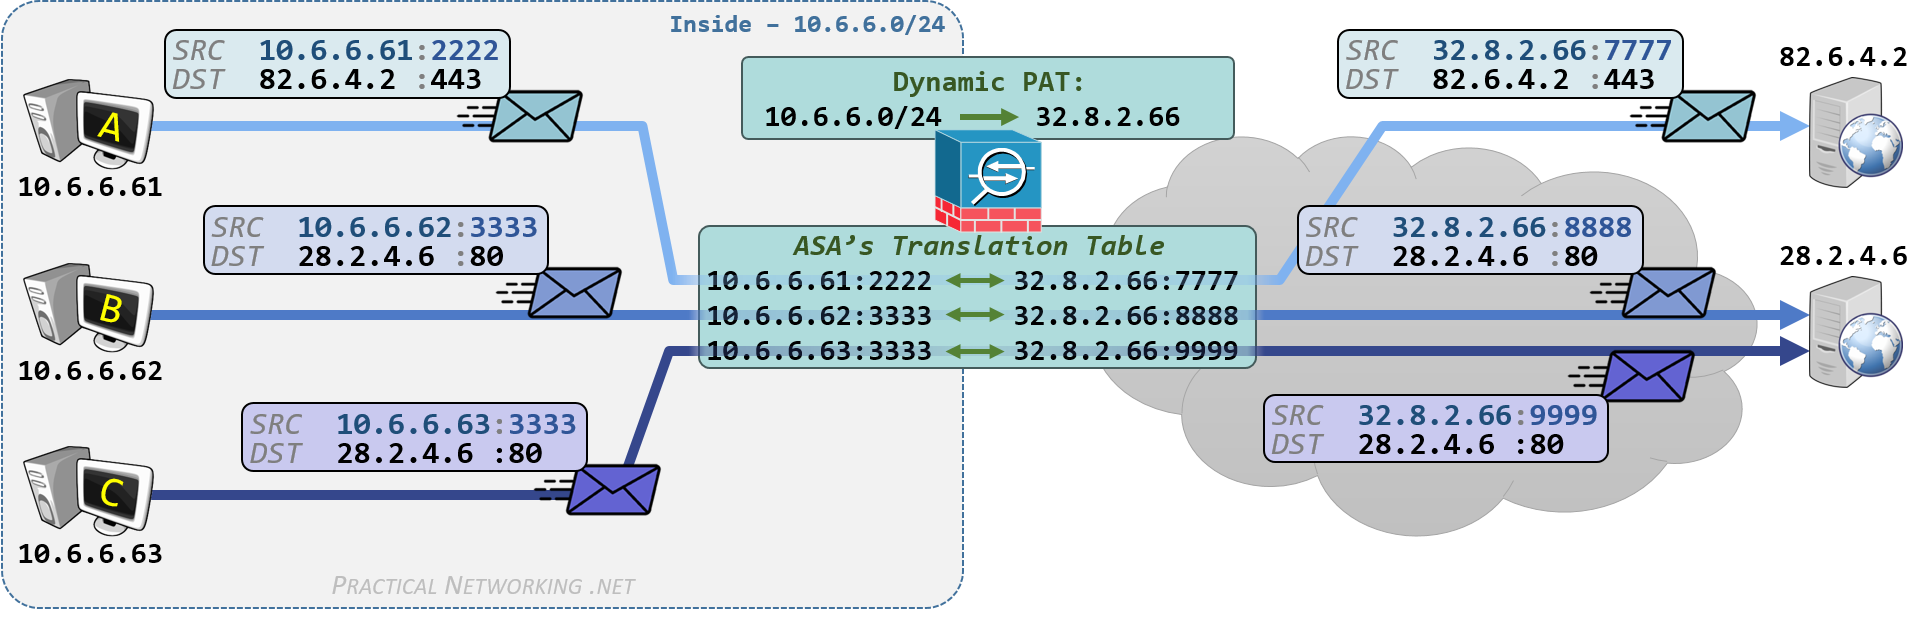 Cisco ASA NAT - Configuring Dynamic PAT with Auto NAT and Manual NAT - Outbound